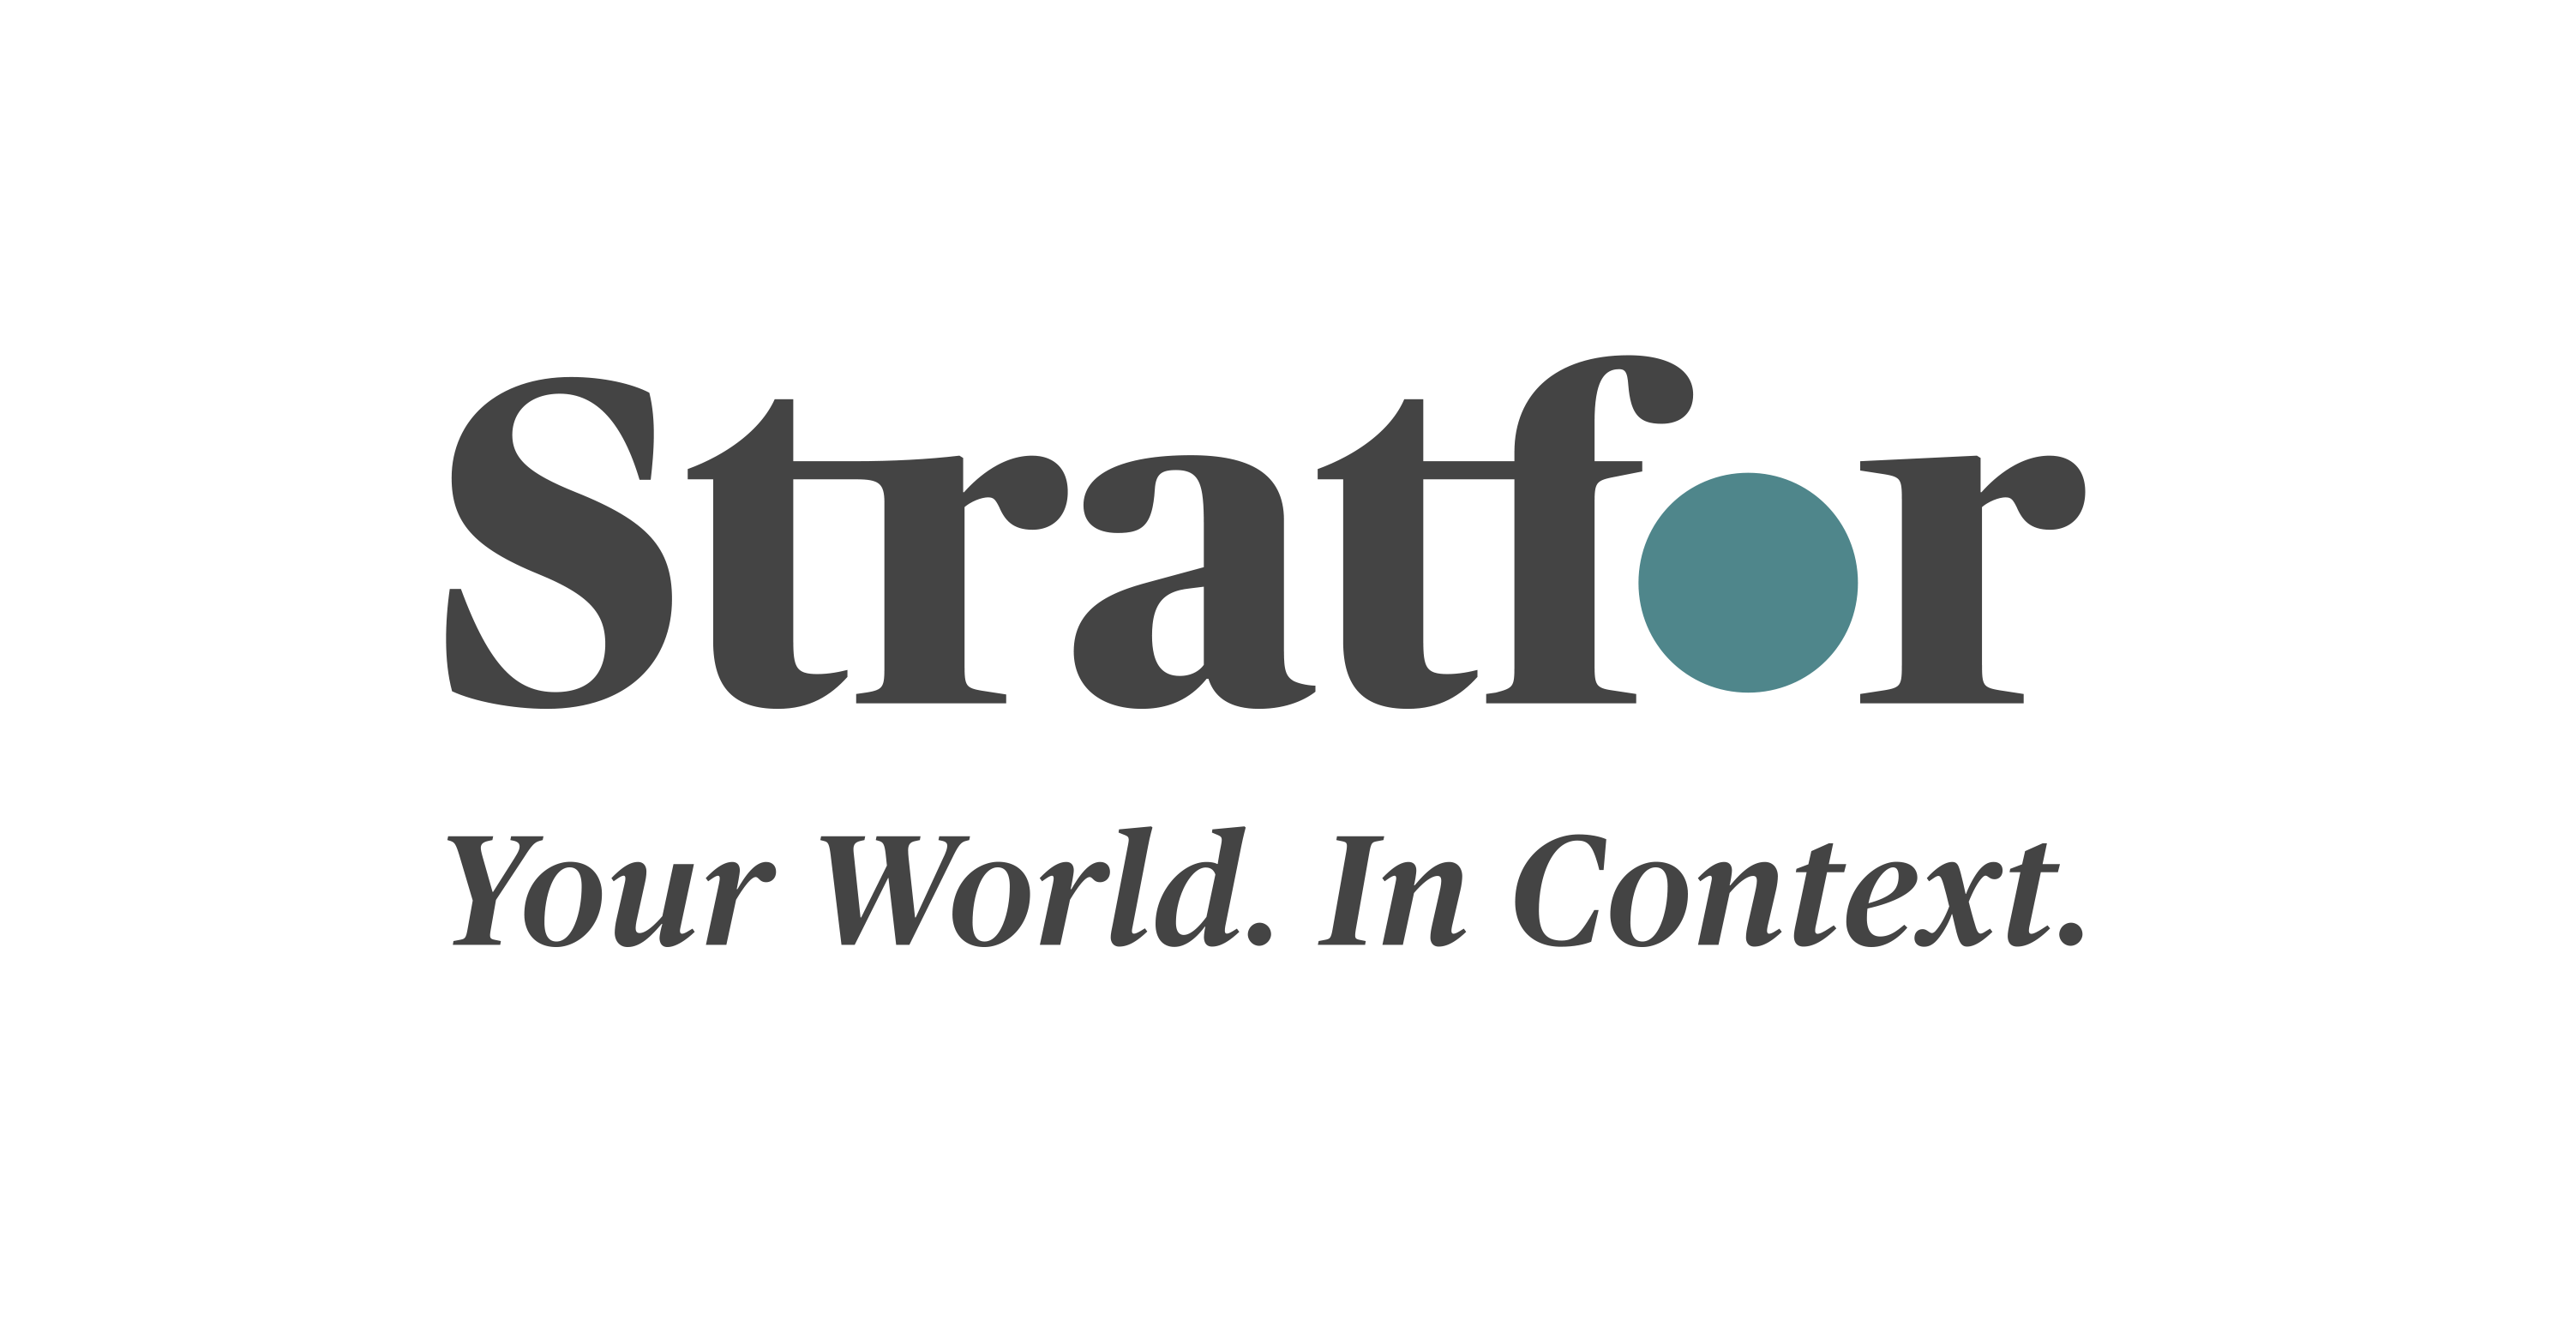 logo_Stratfor_Your_World_In_Context.png